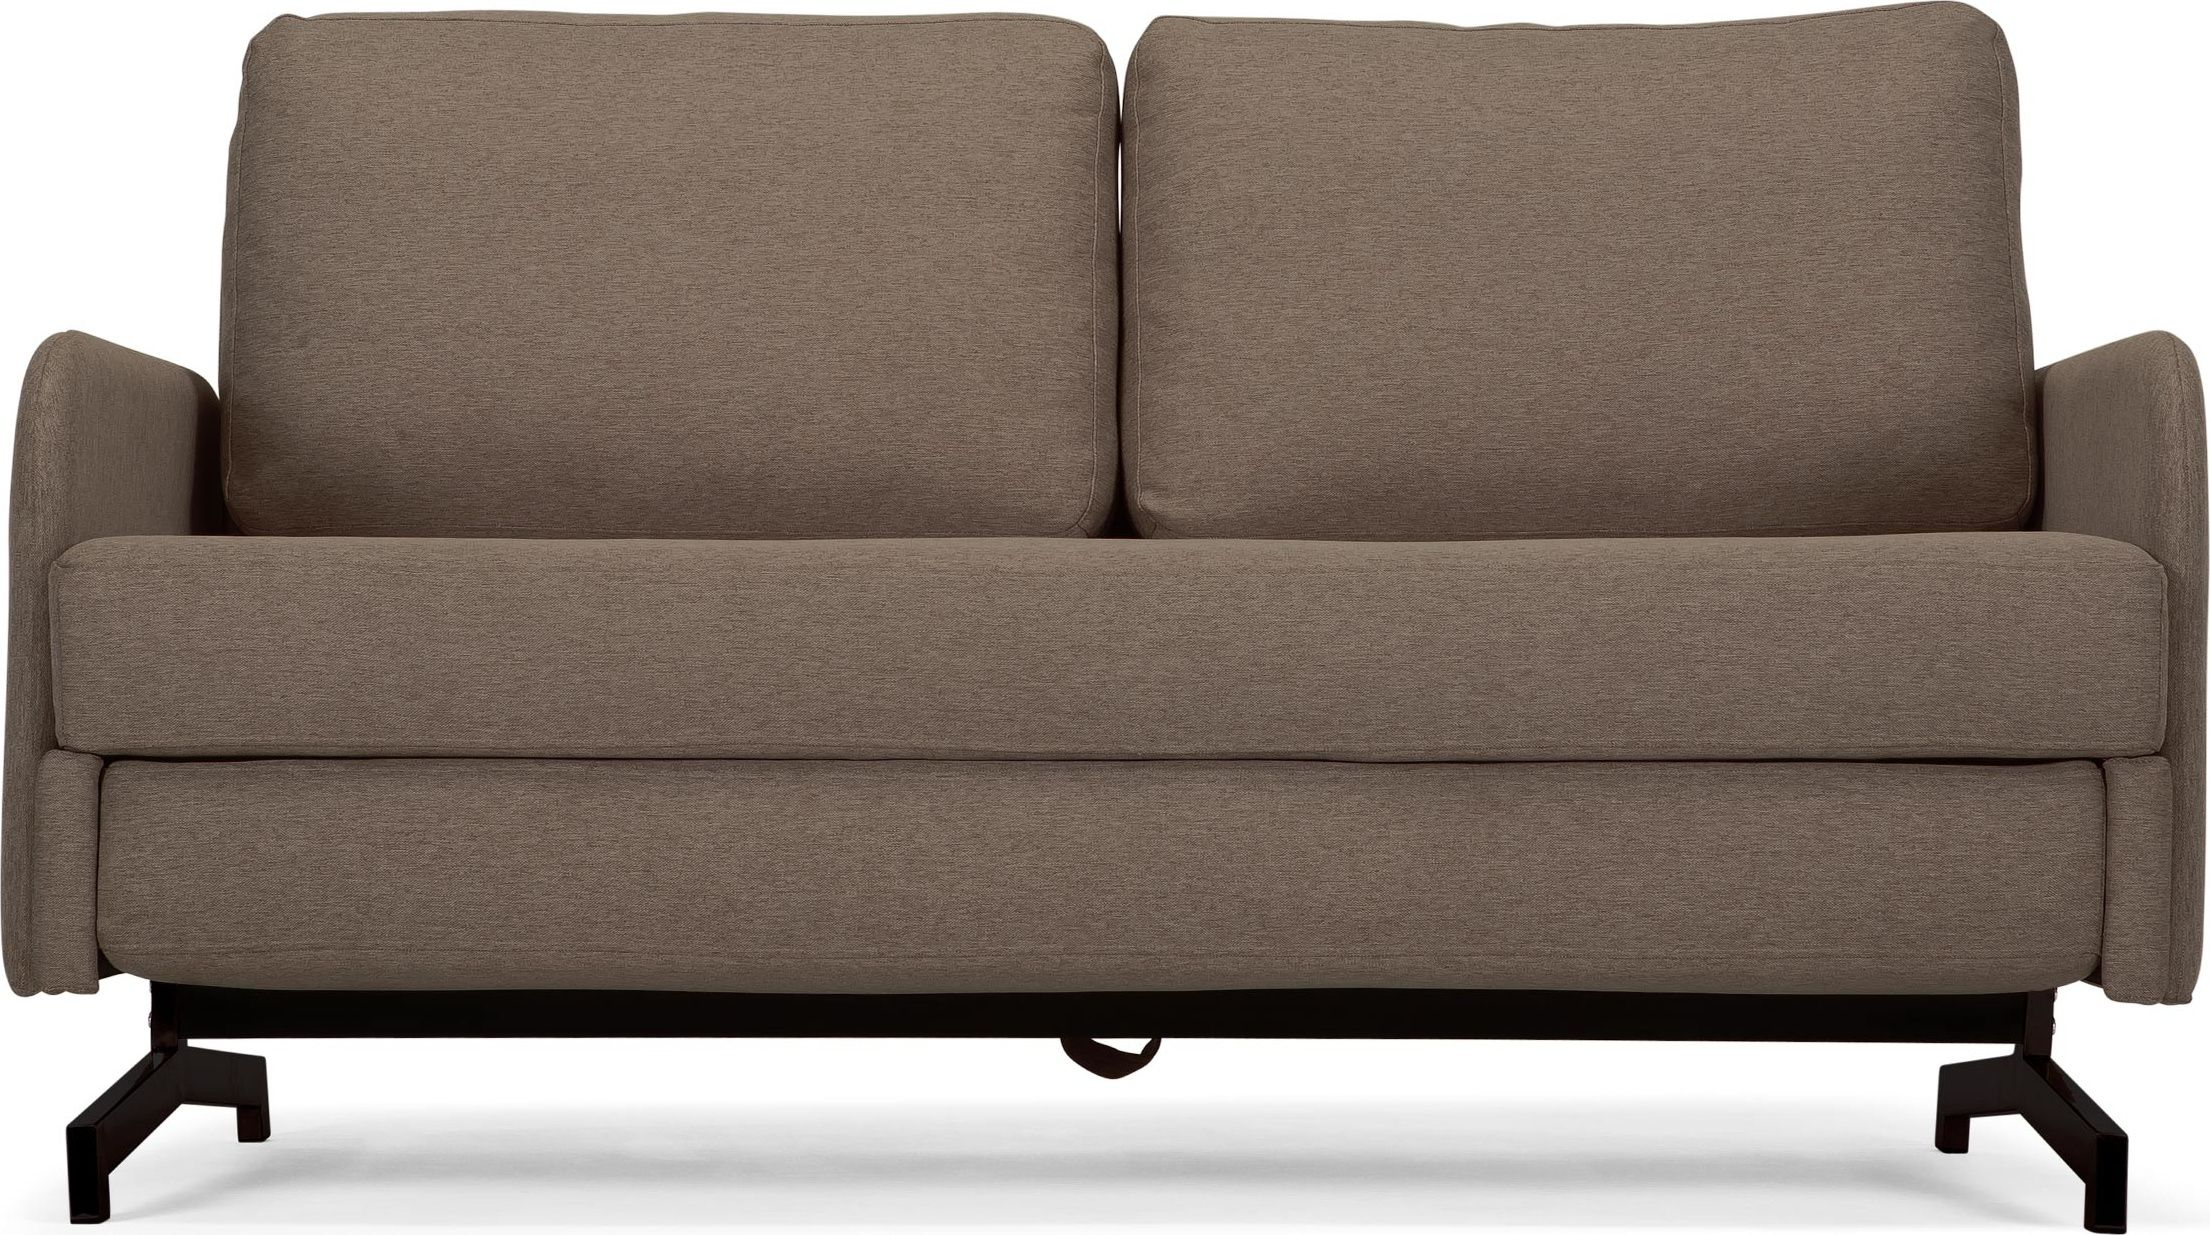 Sofa Bed Express Delivery Motti Sofa Bed In Grouse Brown Products Pinterest Sofa Sofa